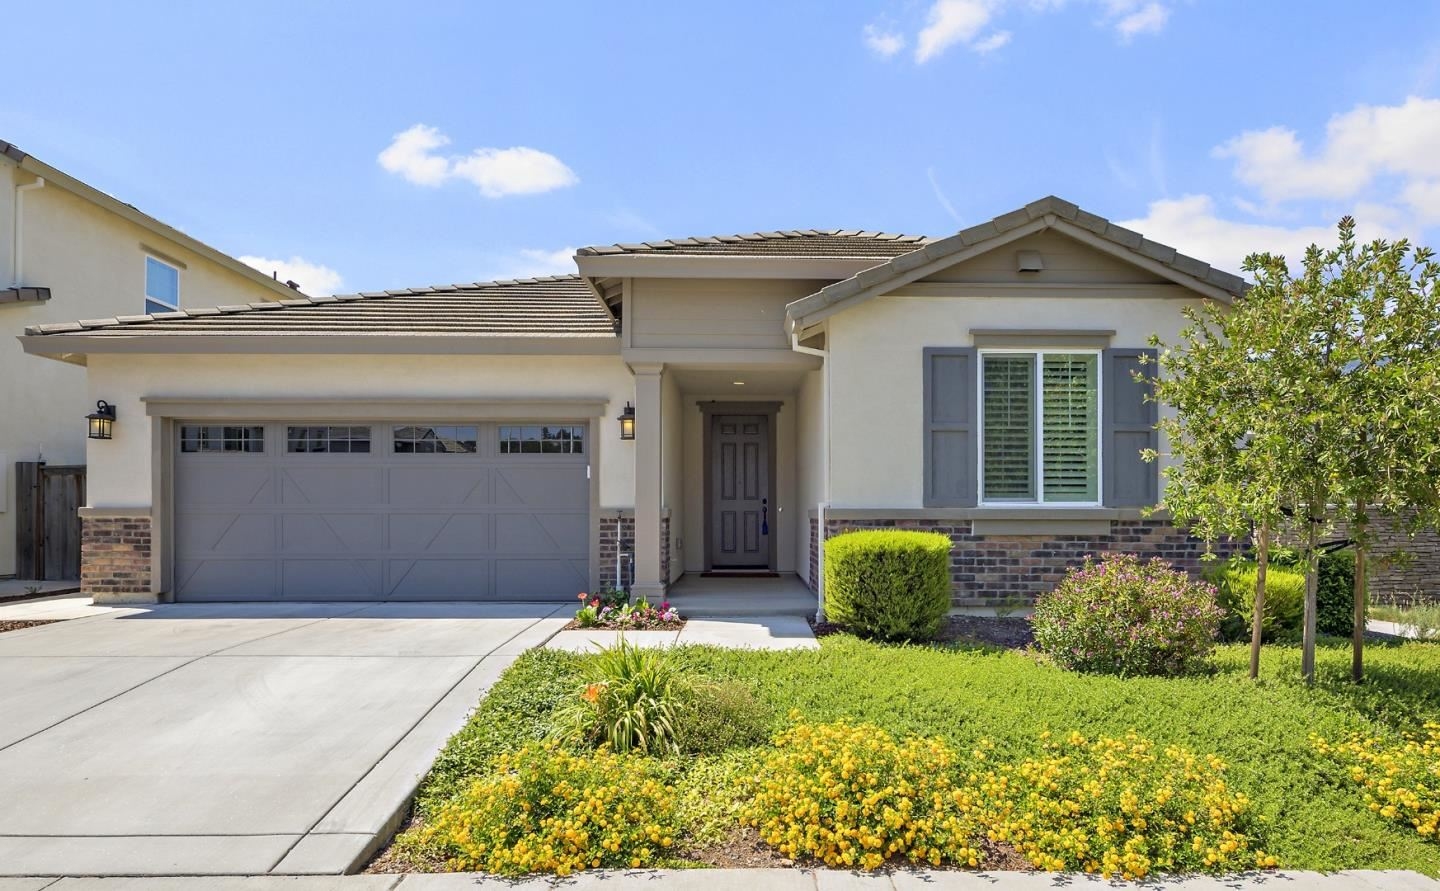 Photo for 1798 Rosemary Drive, GILROY, CA 95020 (MLS # ML81853278)